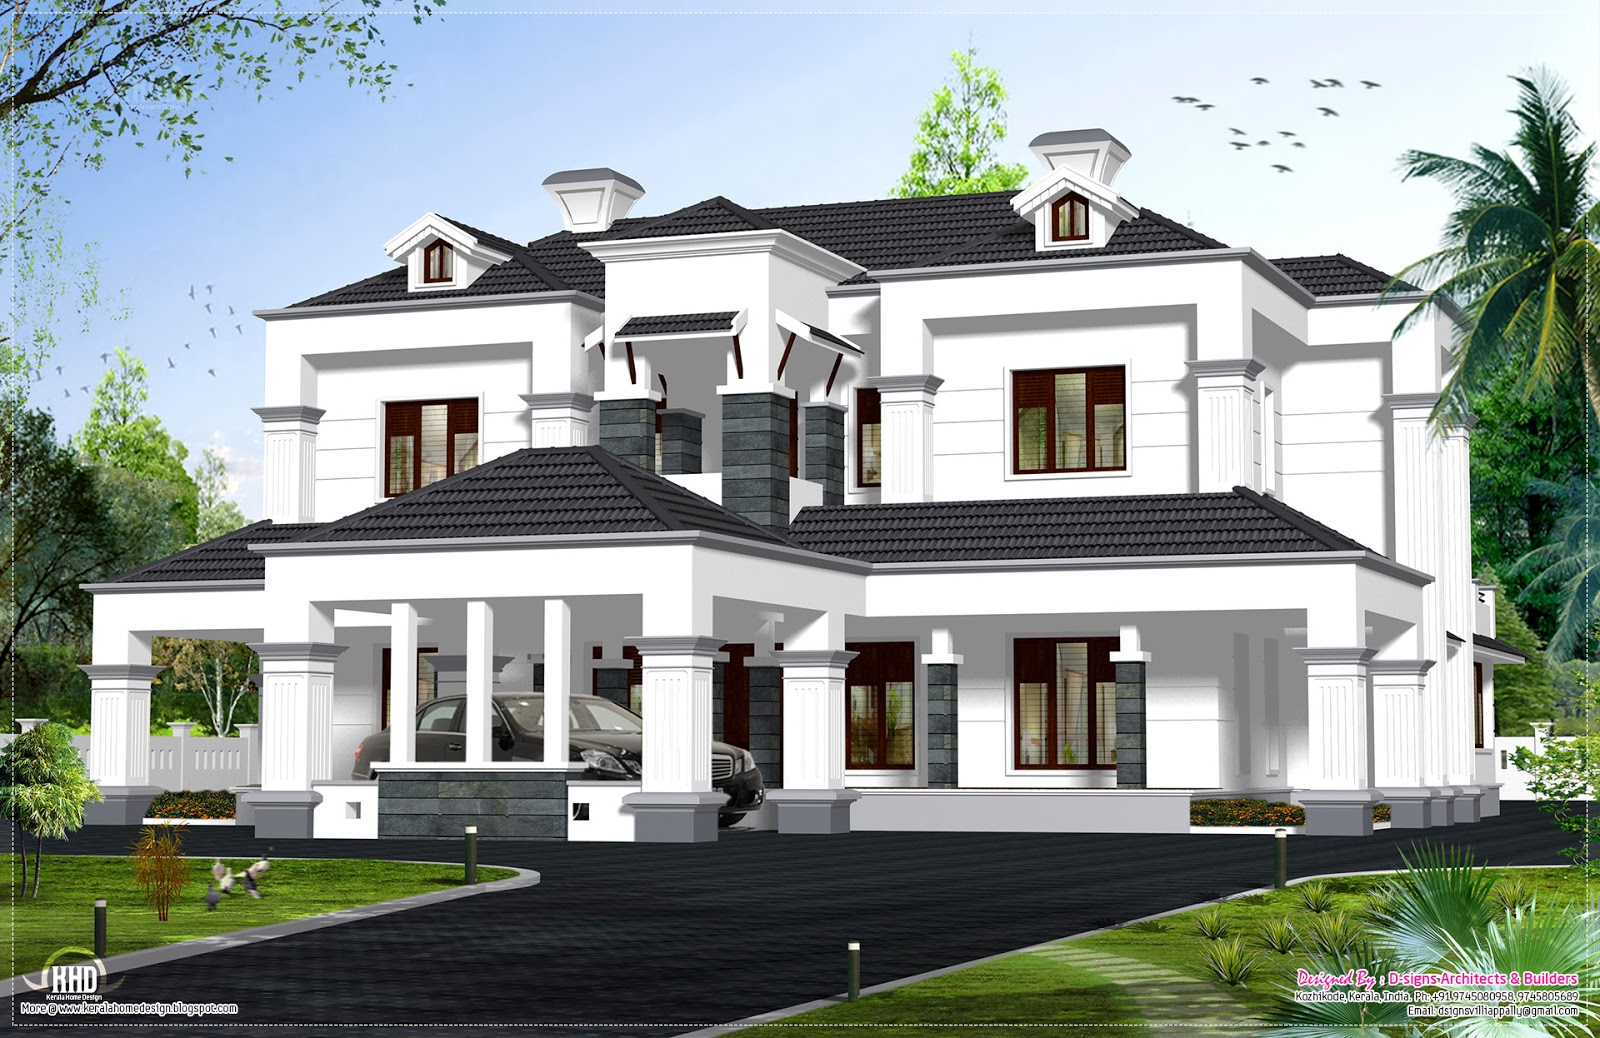 Victorian model house exterior kerala home design and for Kerala house models and plans